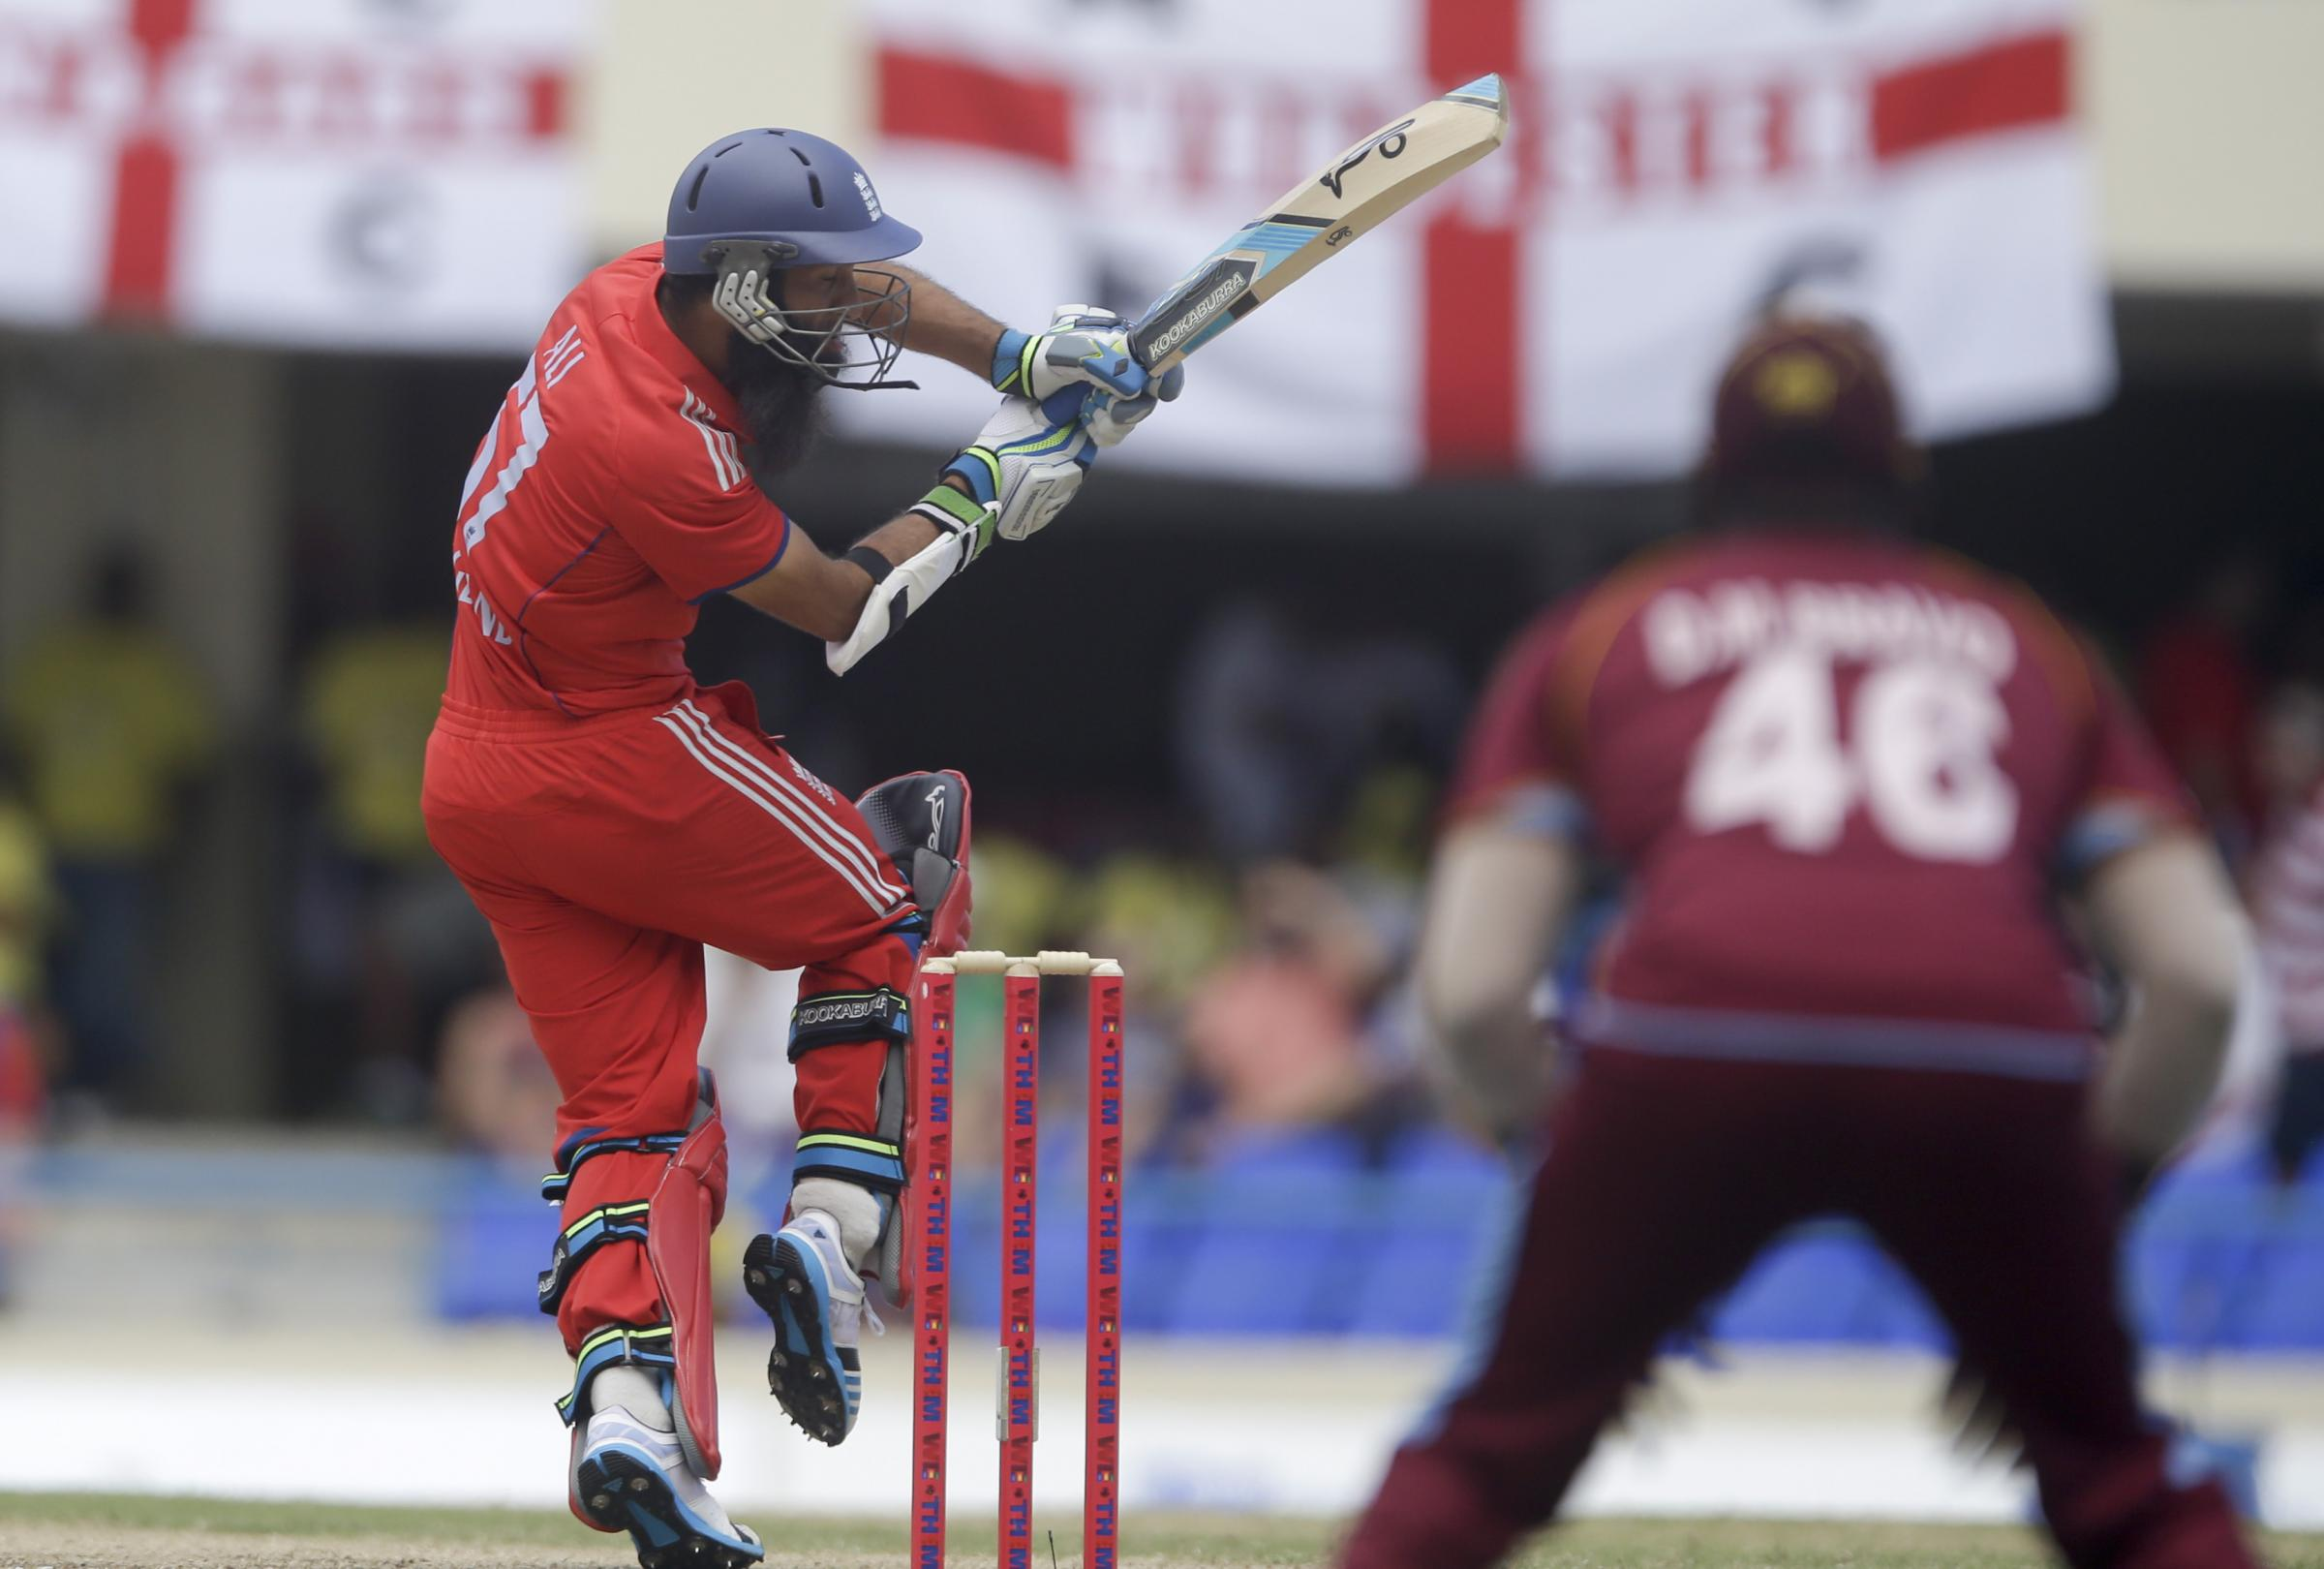 England's Moeen Ali bats during the second one-day international cricket match against West Indies at the Sir Vivian Richards Cricket Ground in St. John's, Antigua, Sunday, March 2, 2014. (AP Photo/Ricardo Mazalan). (4340592)